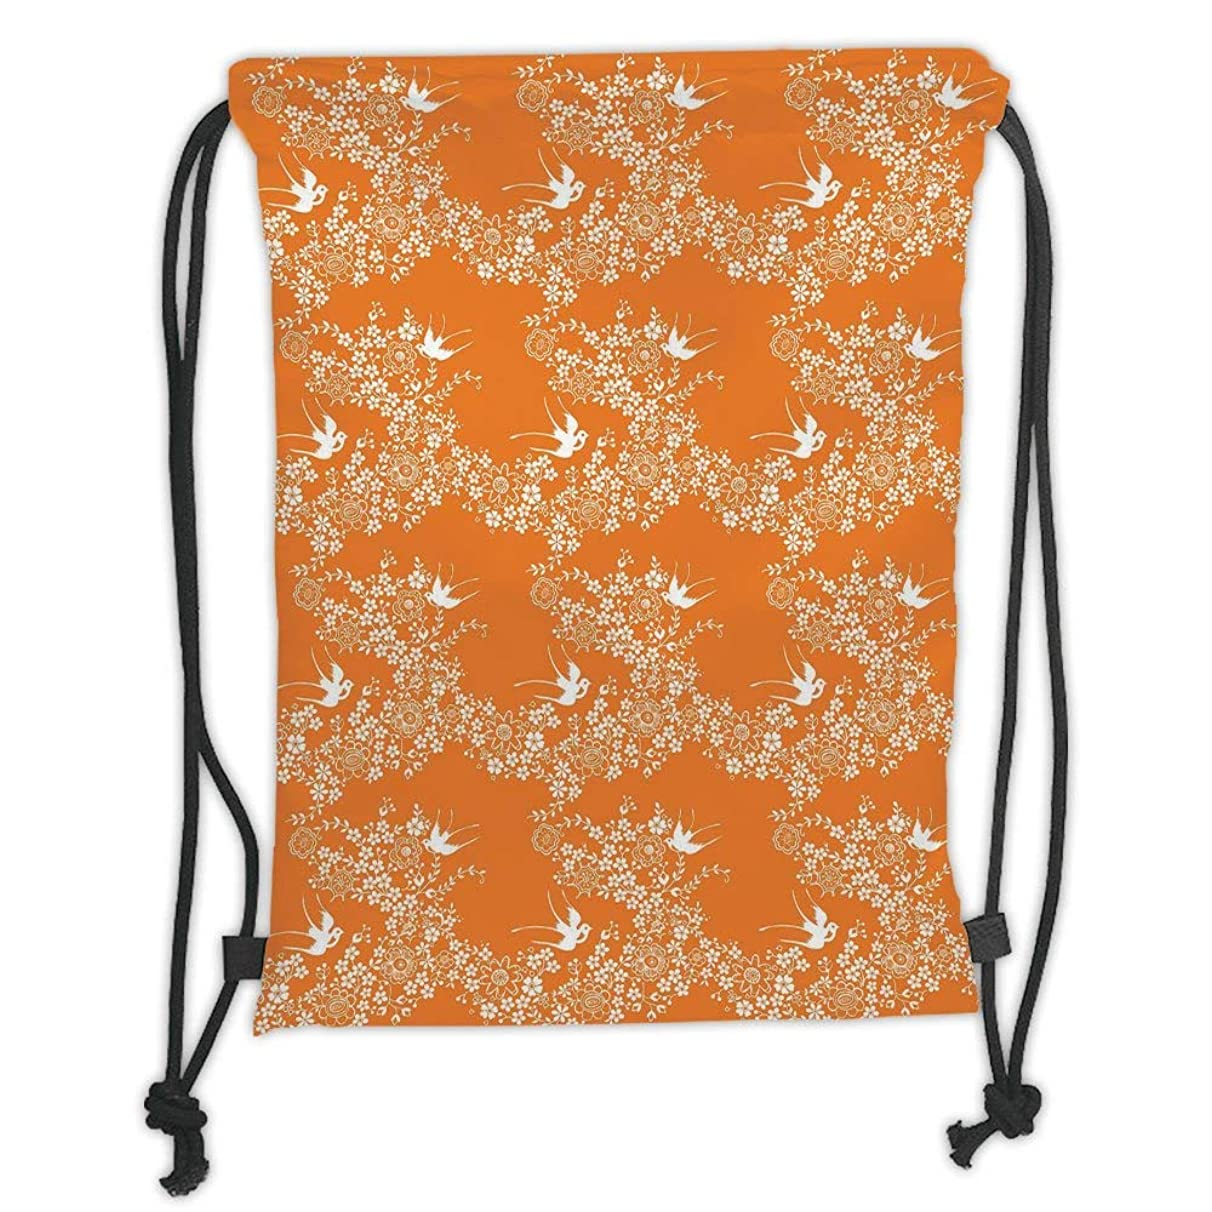 New Fashion Gym Drawstring Backpacks Bags,Orange,Asian Style Spring Meadow Pattern with Branches in Full Blossom with Birds Nature,Orange White Soft Satin,Adjustable String Closur